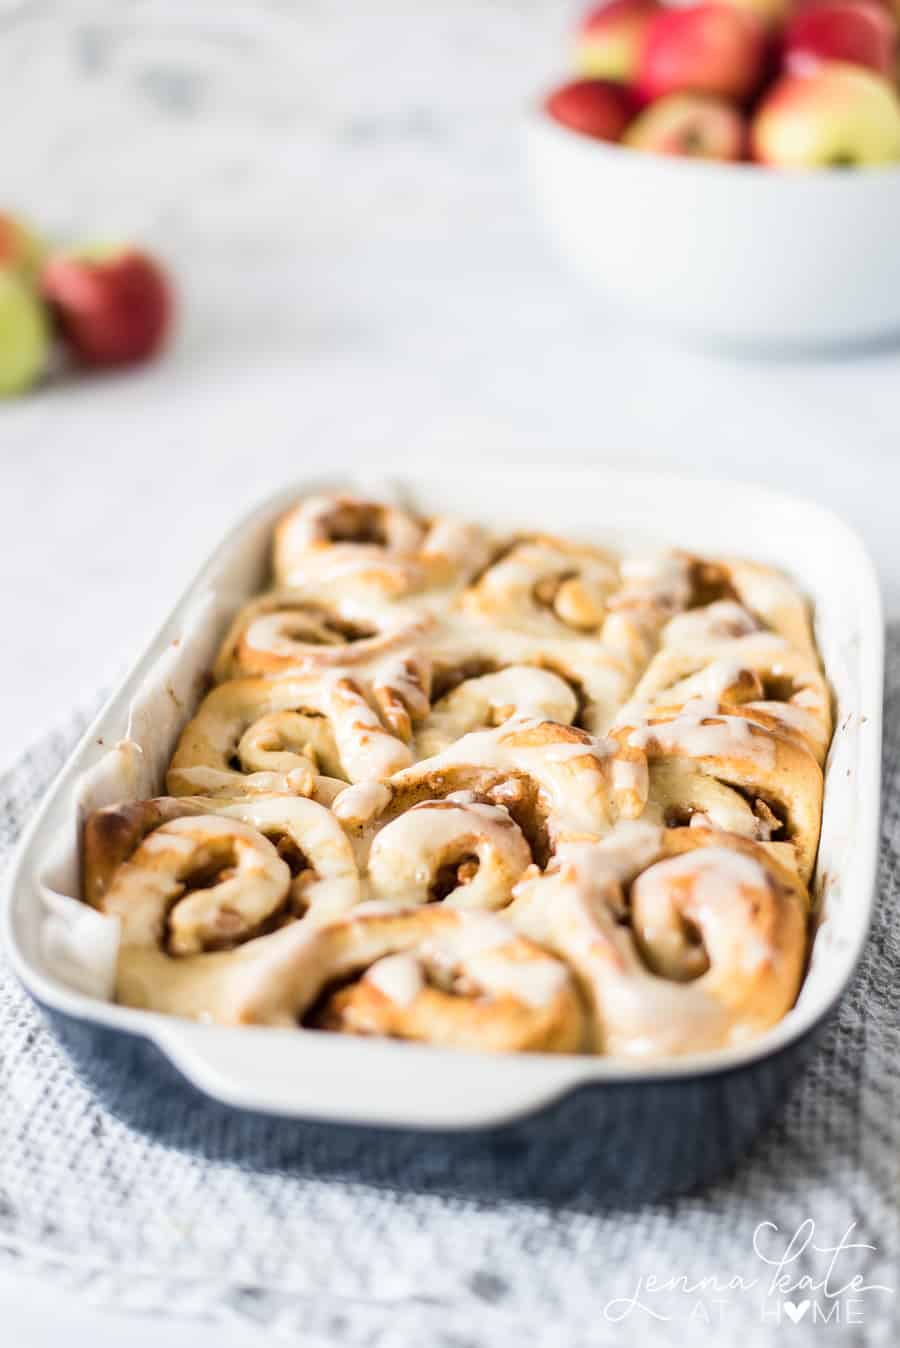 Cinnamon roll with apple pie filling. Say bye to Pillsbury and hello to homemade!